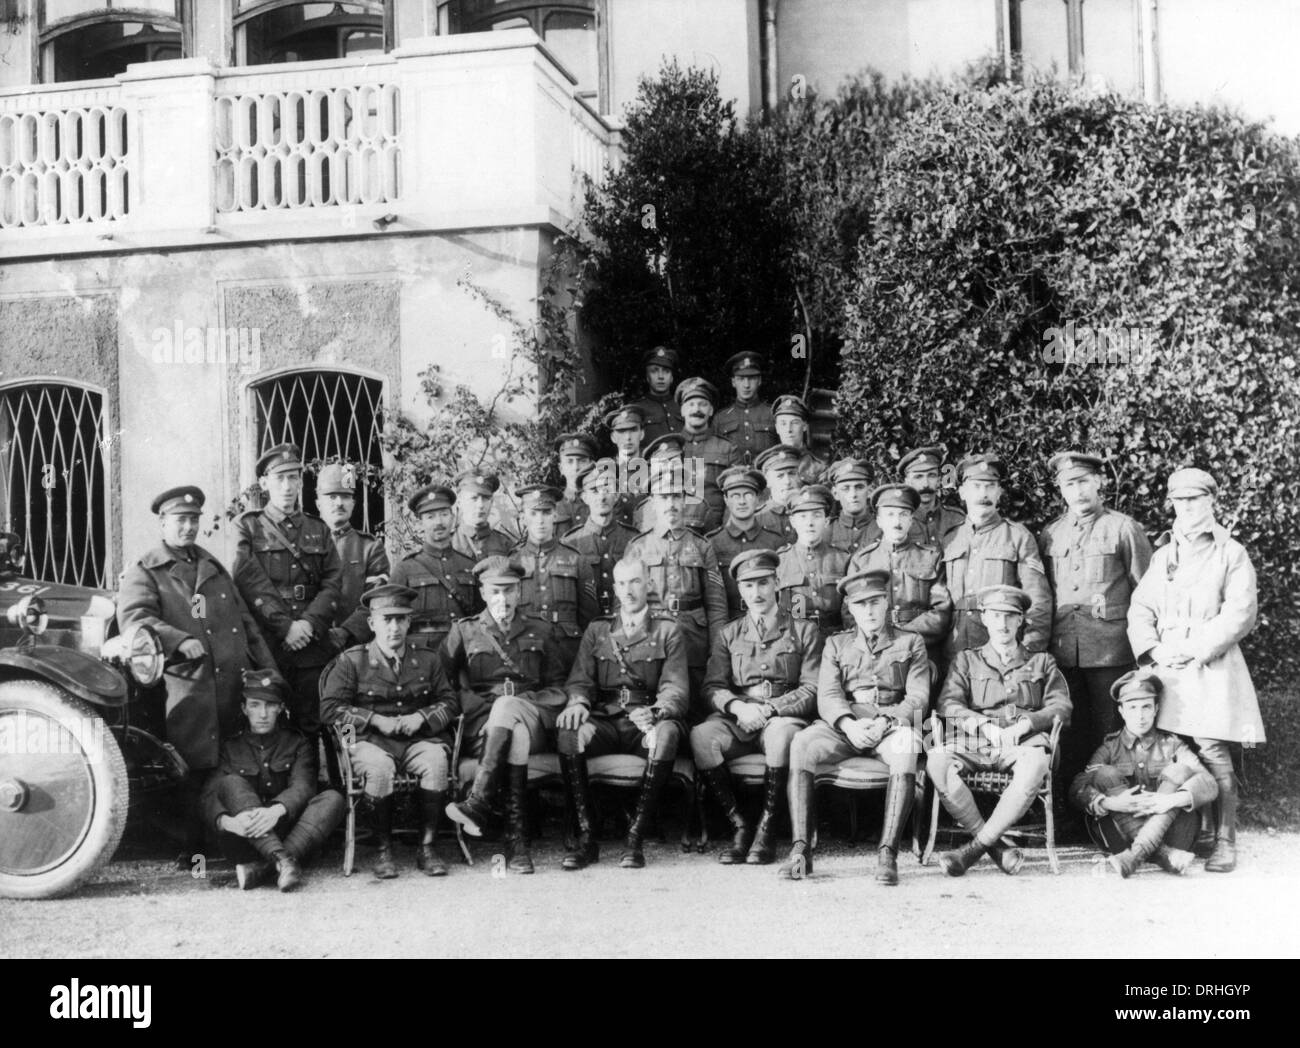 Group photo of British Army officers and soldiers, WW1 - Stock Image